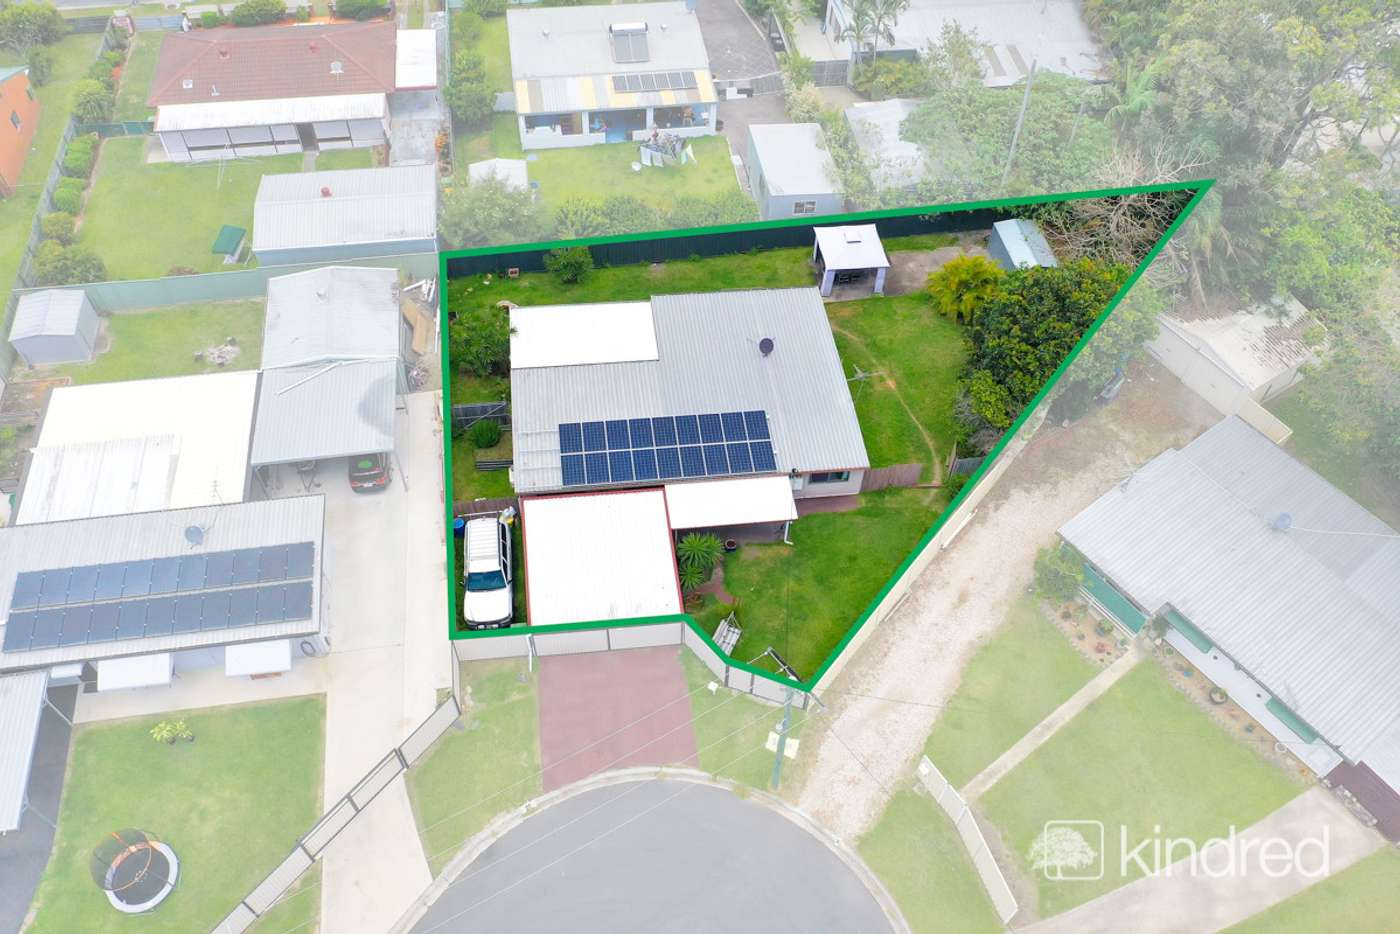 Main view of Homely house listing, 14 Samaya Street, Burpengary QLD 4505